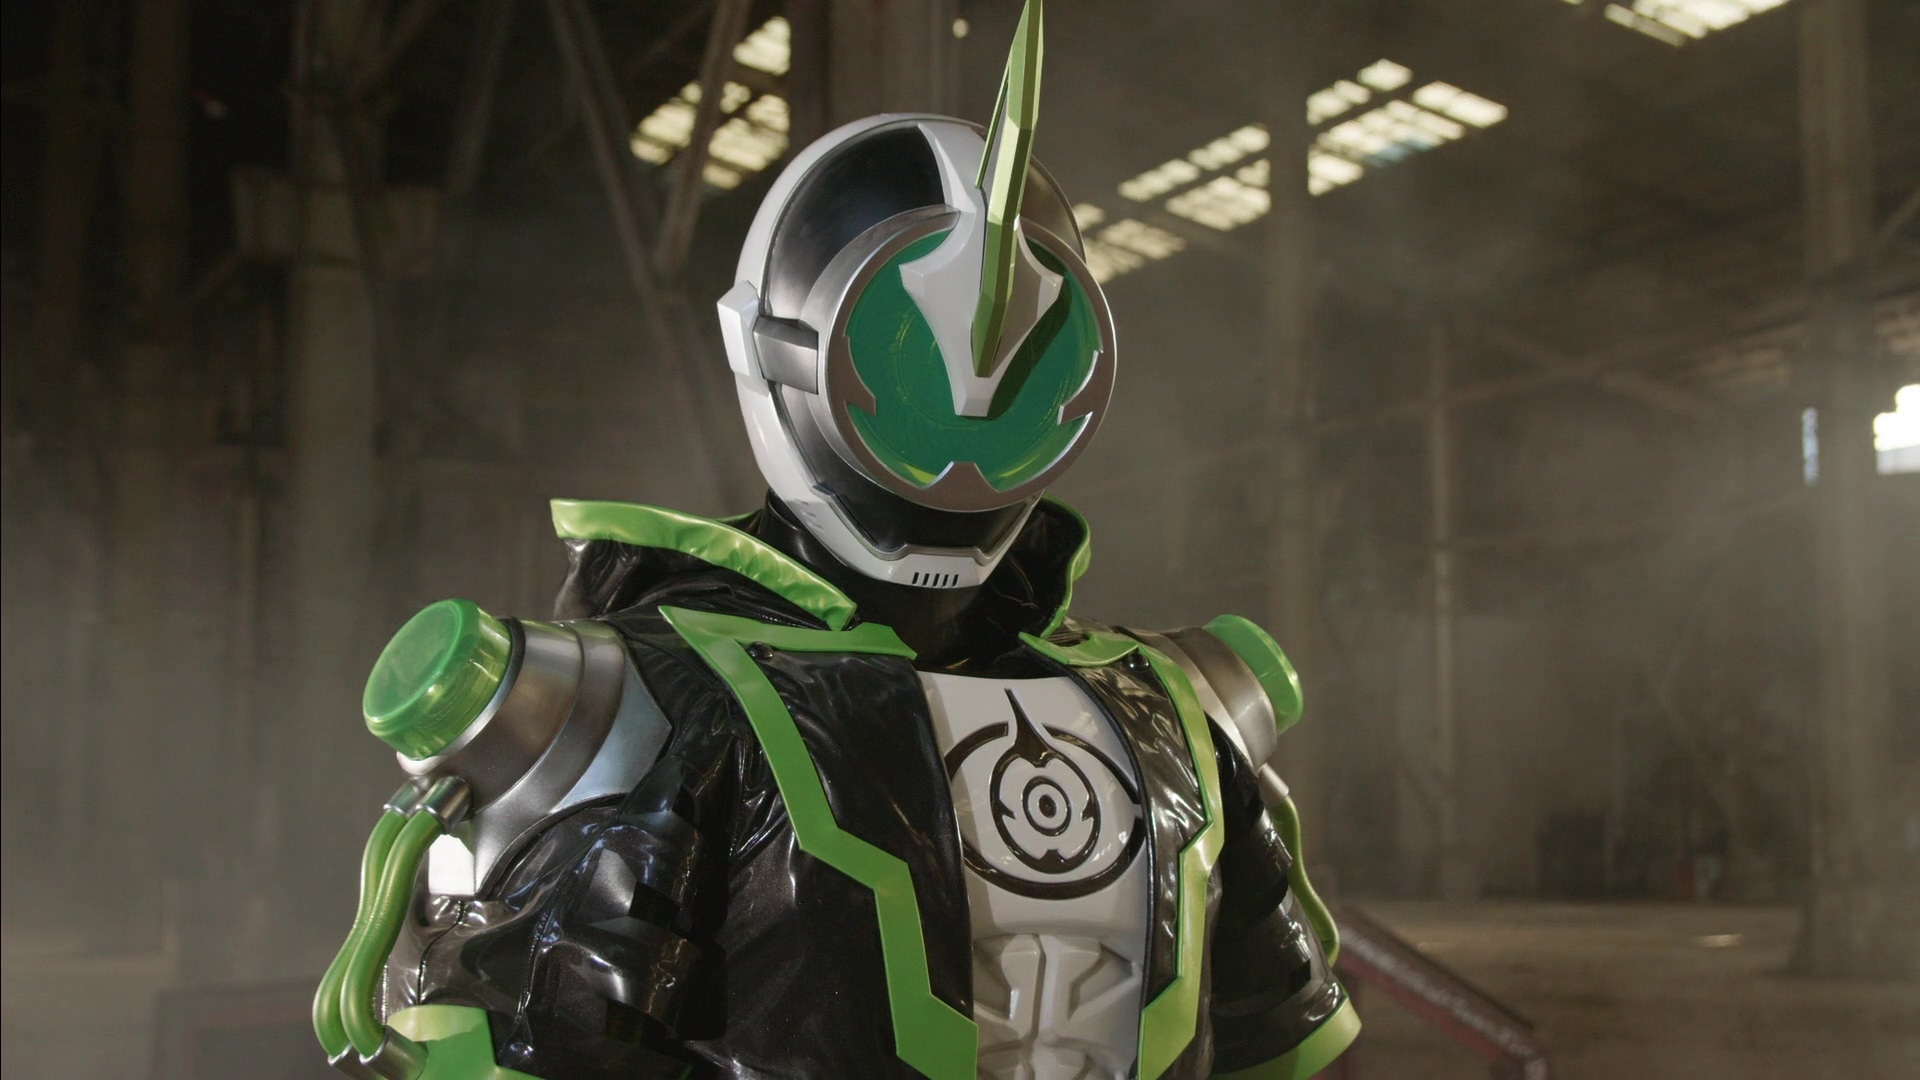 http://vignette1.wikia.nocookie.net/kamenrider/images/9/9a/Ghost_16.jpg/revision/latest?cb=20160809170721